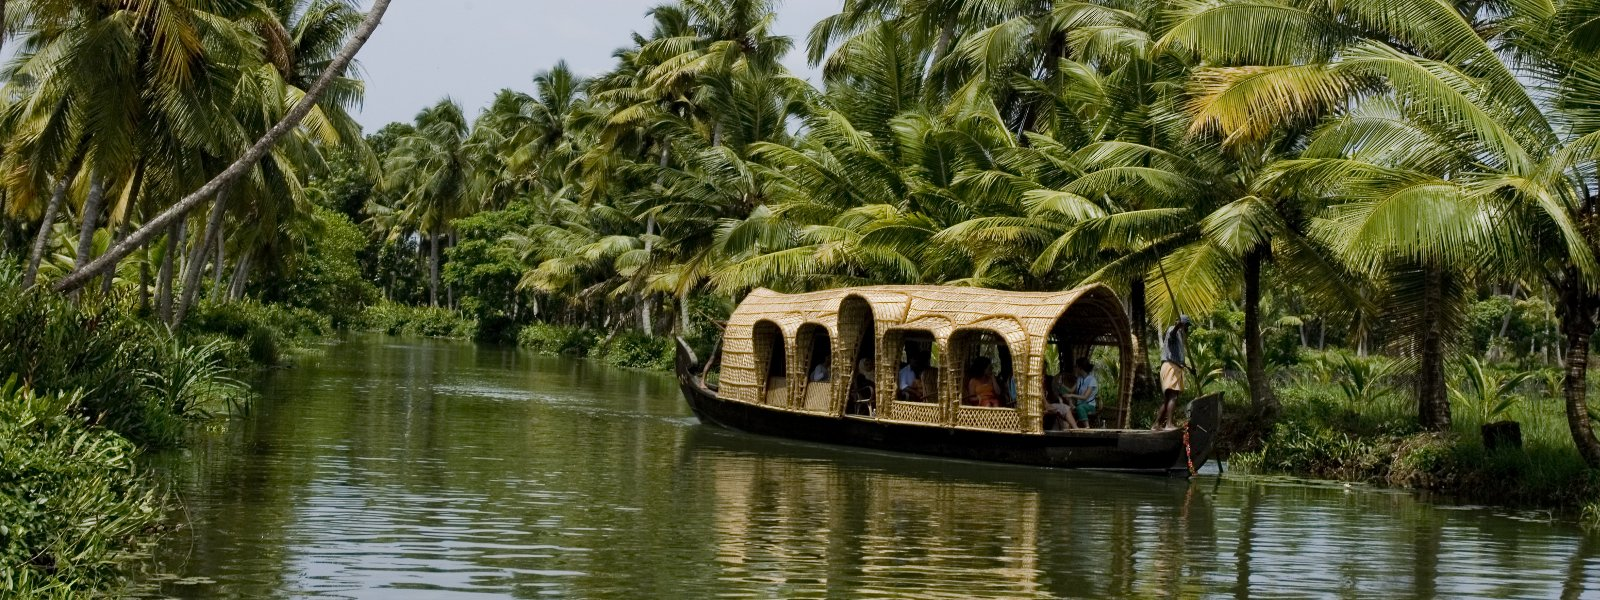 The Houseboat Cruises in Kerala, Aleppey – Truly magical!